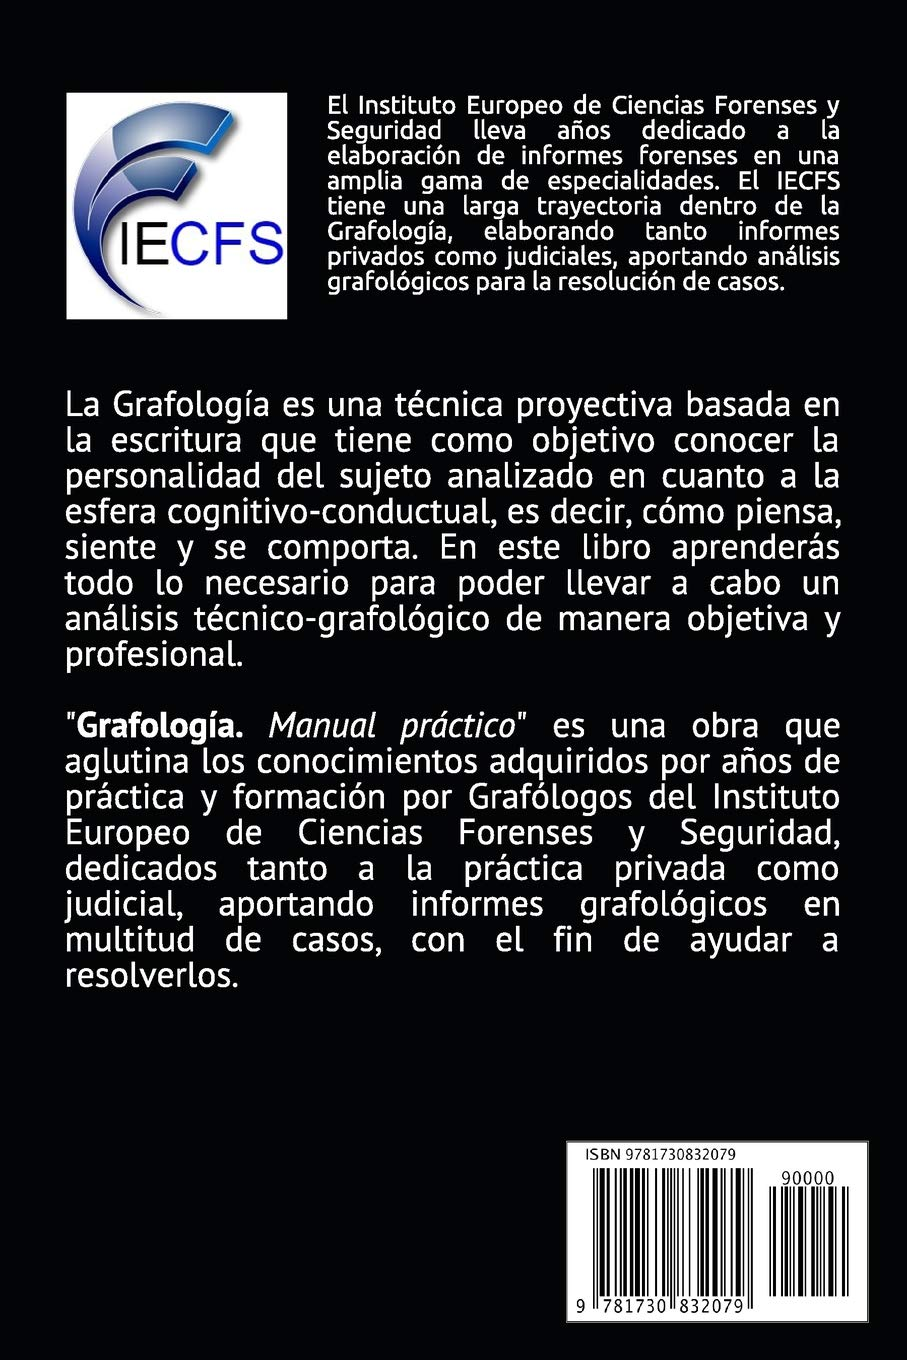 Grafología: Manual práctico: Amazon.es: VV.AA. Instituto Europeo de Ciencias Forenses: Libros